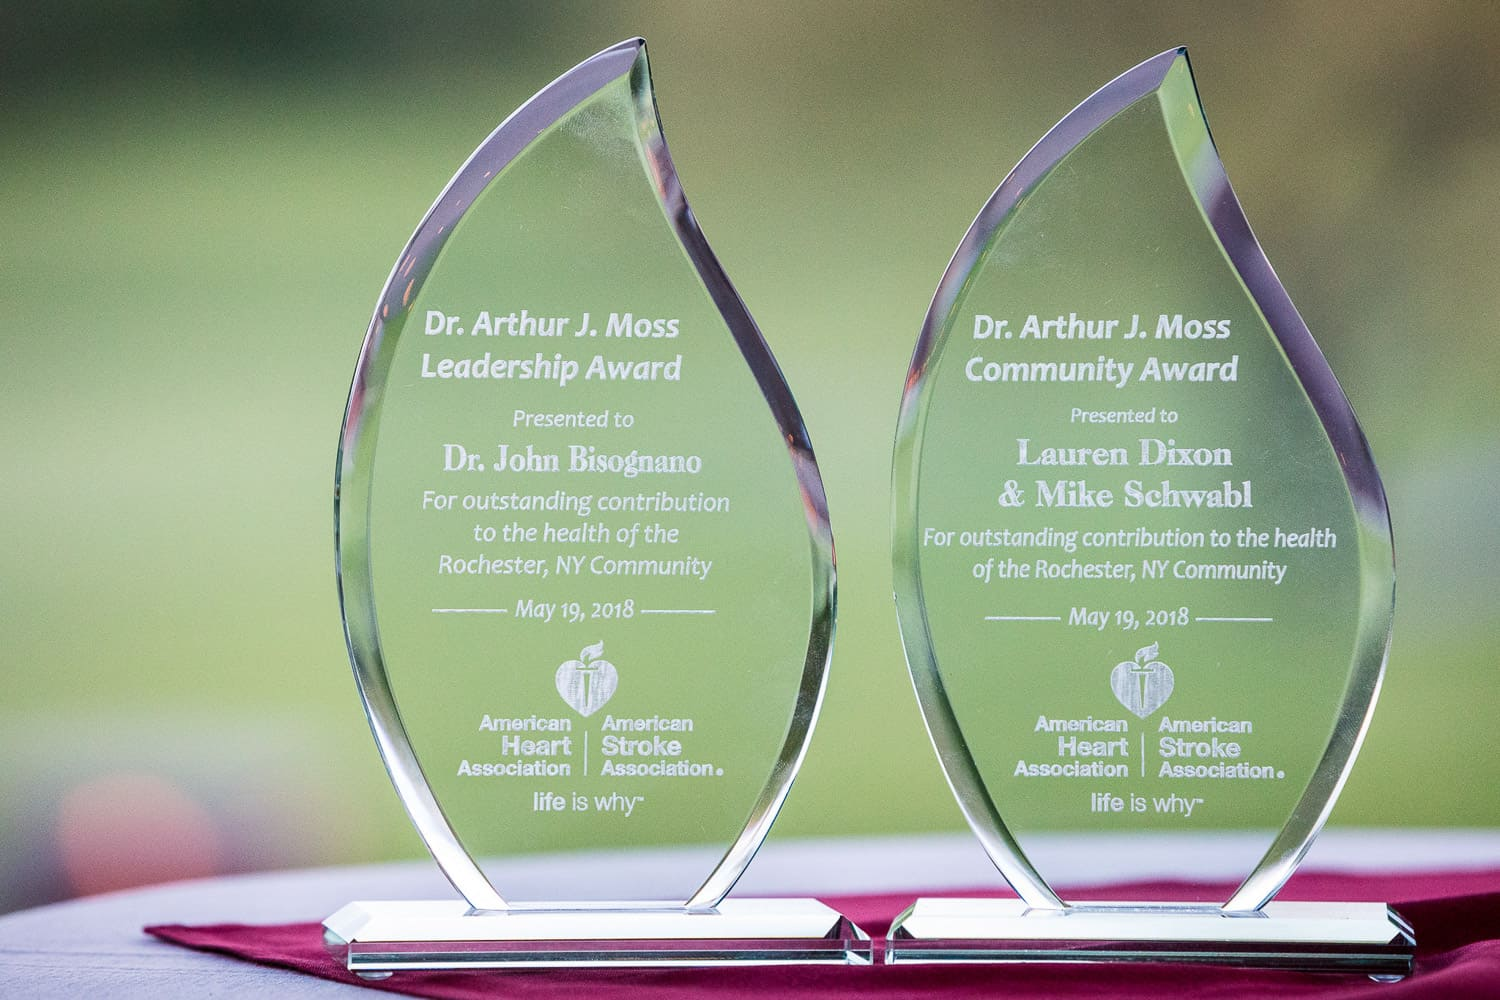 Event photograph of awards to be given out at American Heart Association Heart Ball.